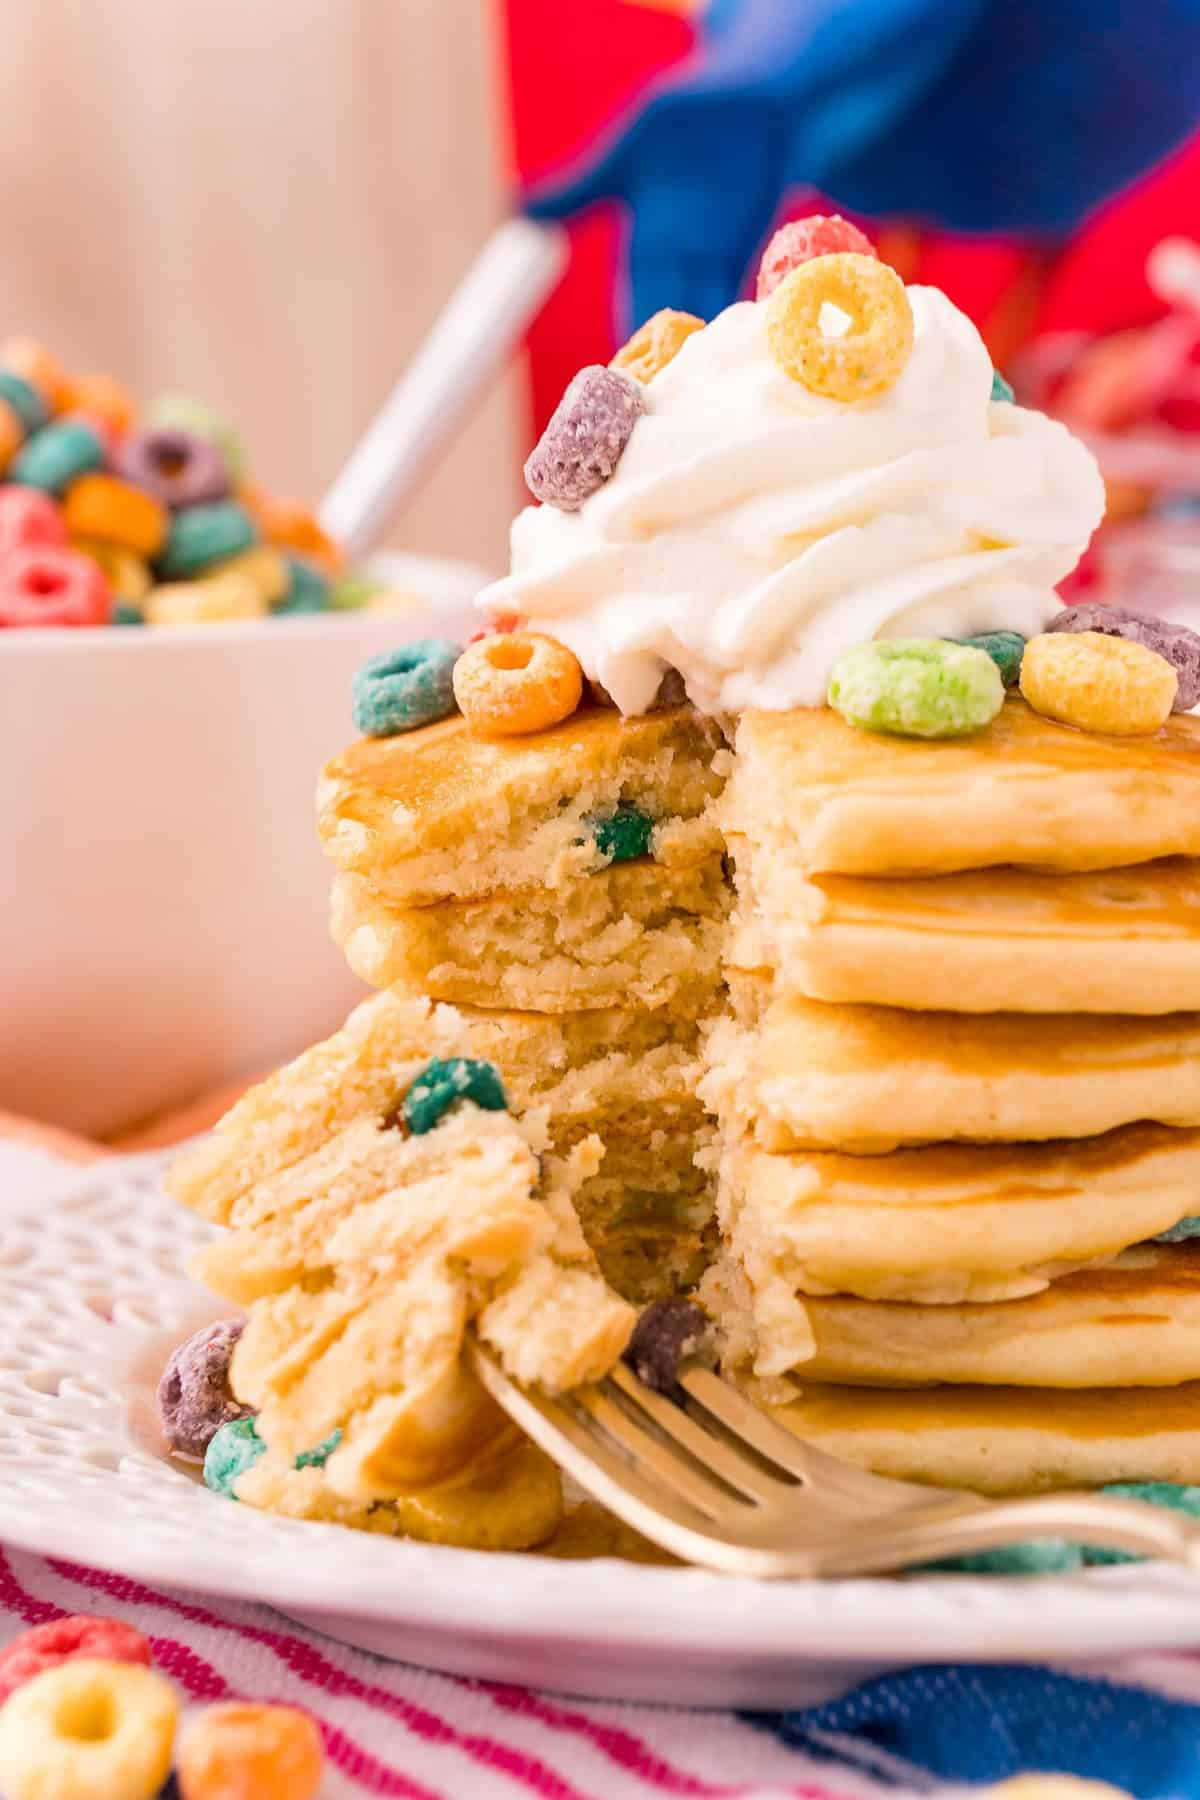 Froot loop pancakes in a large stack, a wedge cut out to show texture.